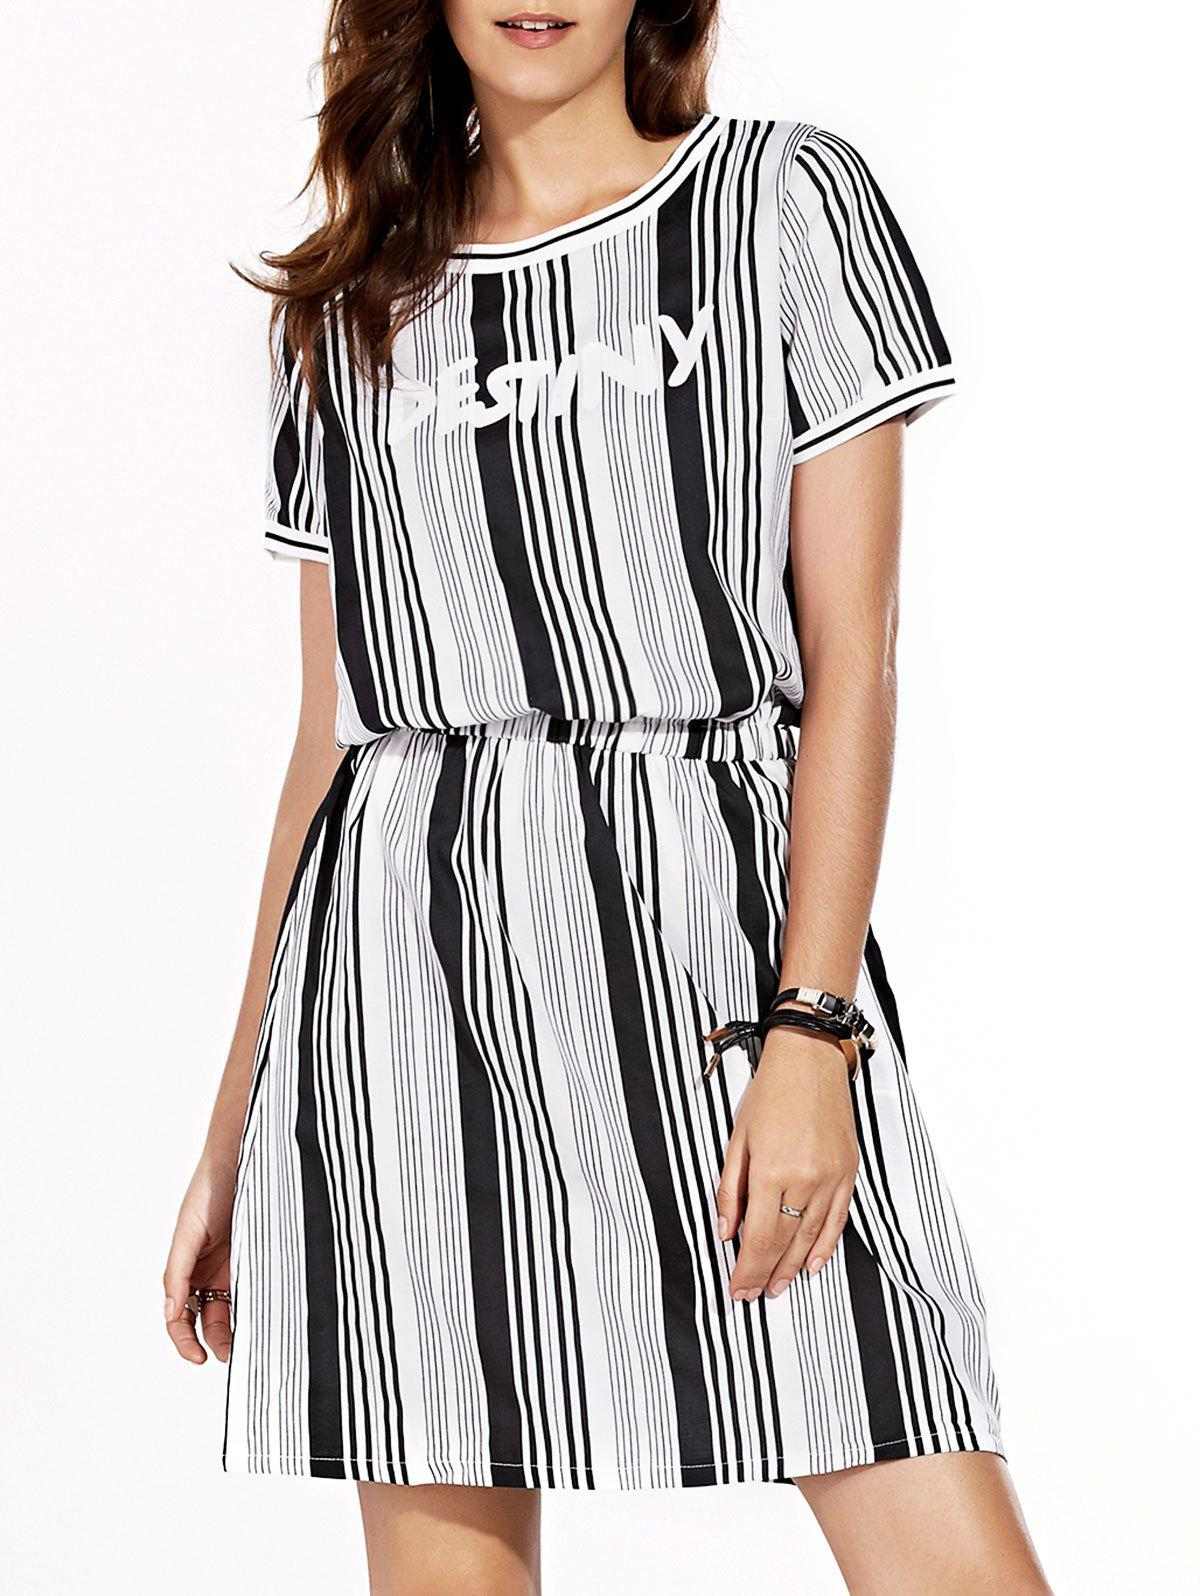 Casual Women's Jewel Neck Short Sleeve Striped A-Line Dress - WHITE/BLACK XL